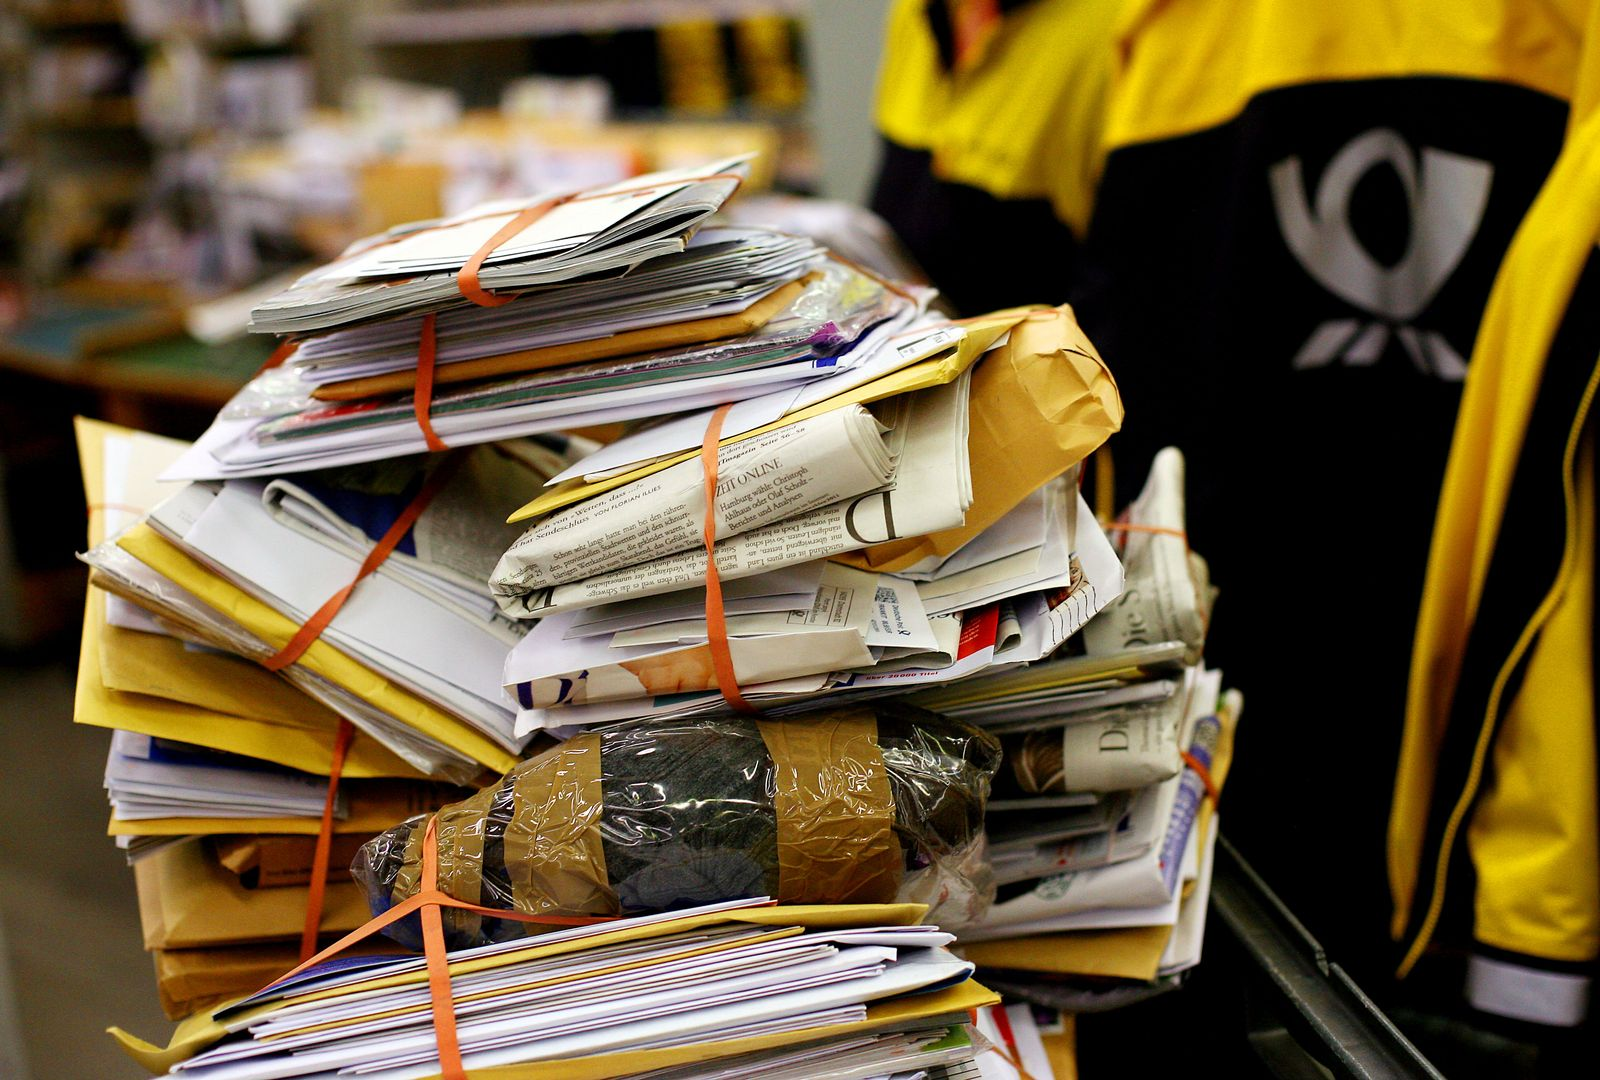 Thema mmO: Deutsche Post / Postbote / Posthorn / Briefe